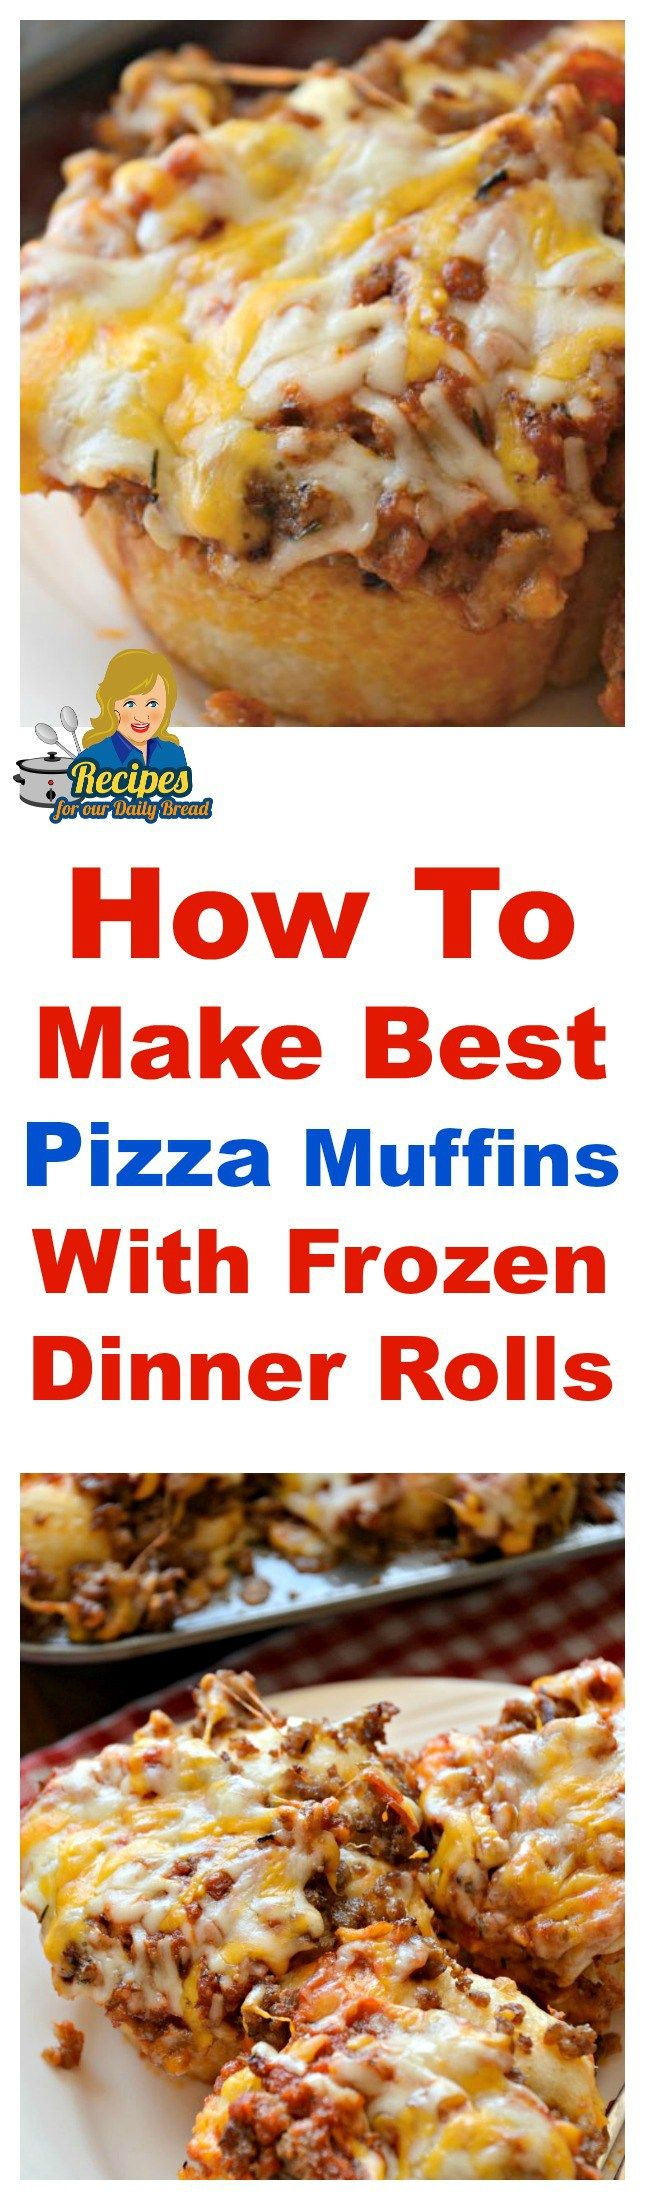 How To Make Best Pizza Muffins With Frozen Dinner Rolls   Recipes For Our Daily Bread   #pizza muffins